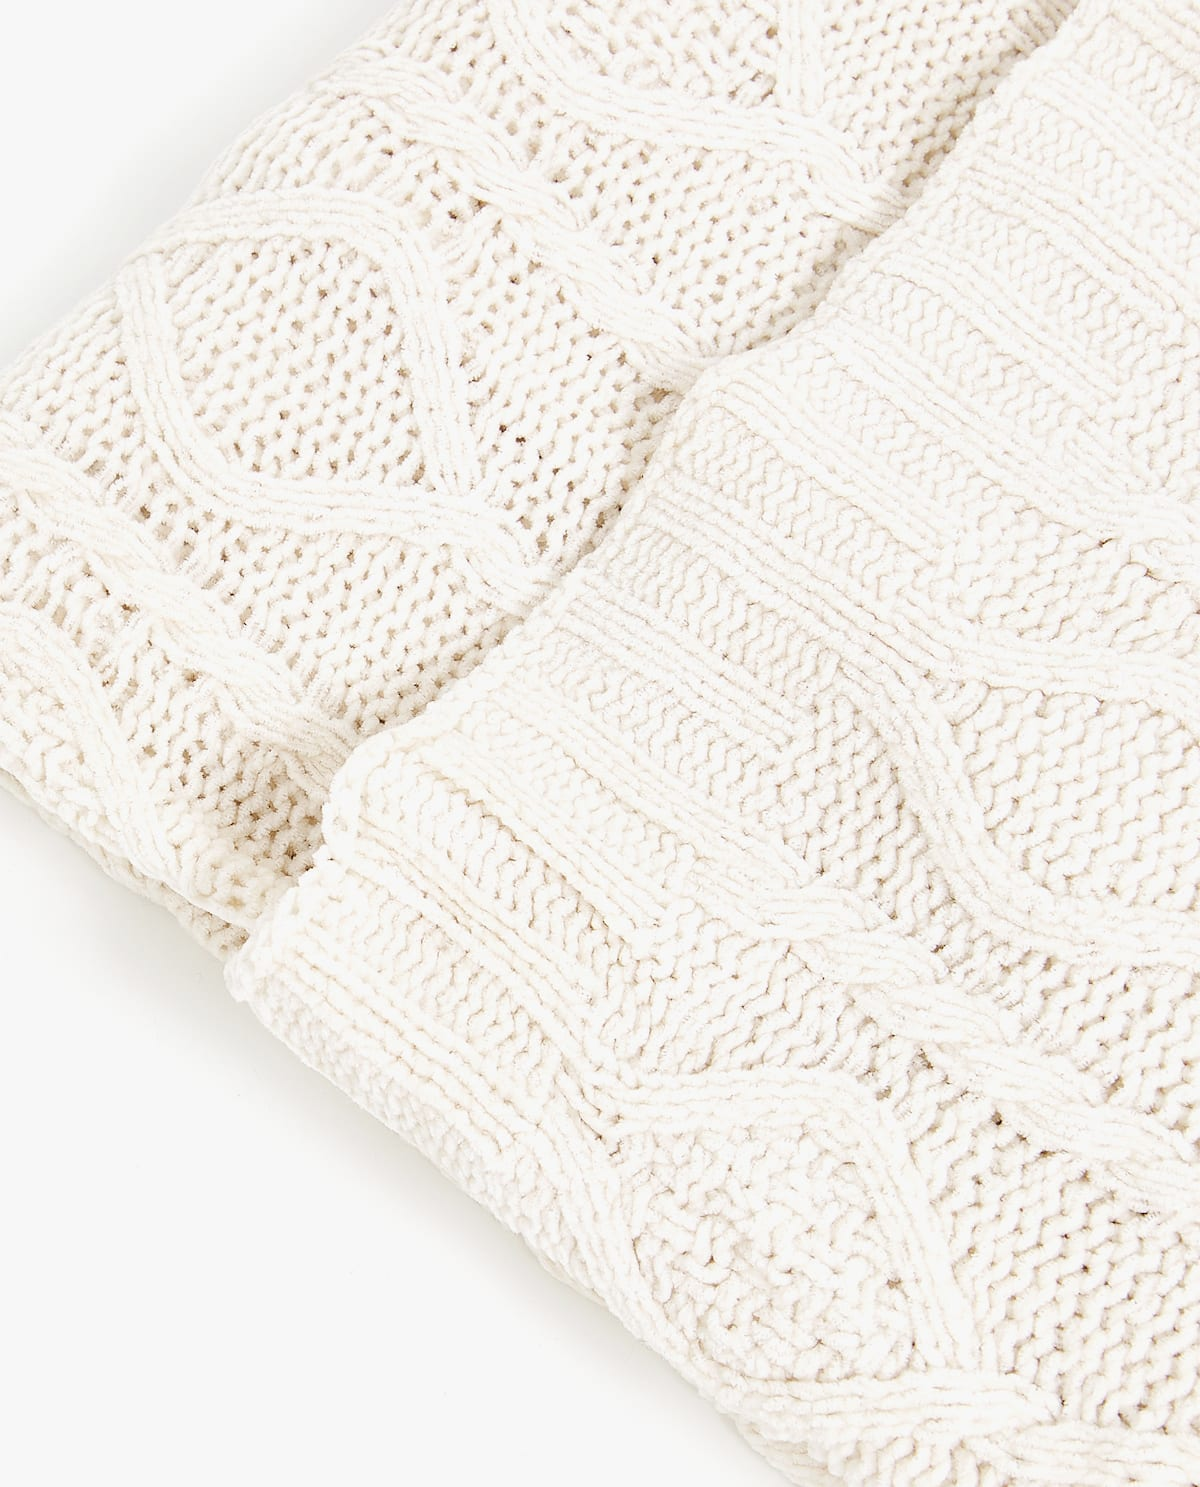 CABLE-KNIT BLANKET - OVER 100$ - BY PRICE - GIFT IDEAS   Zara Home ...